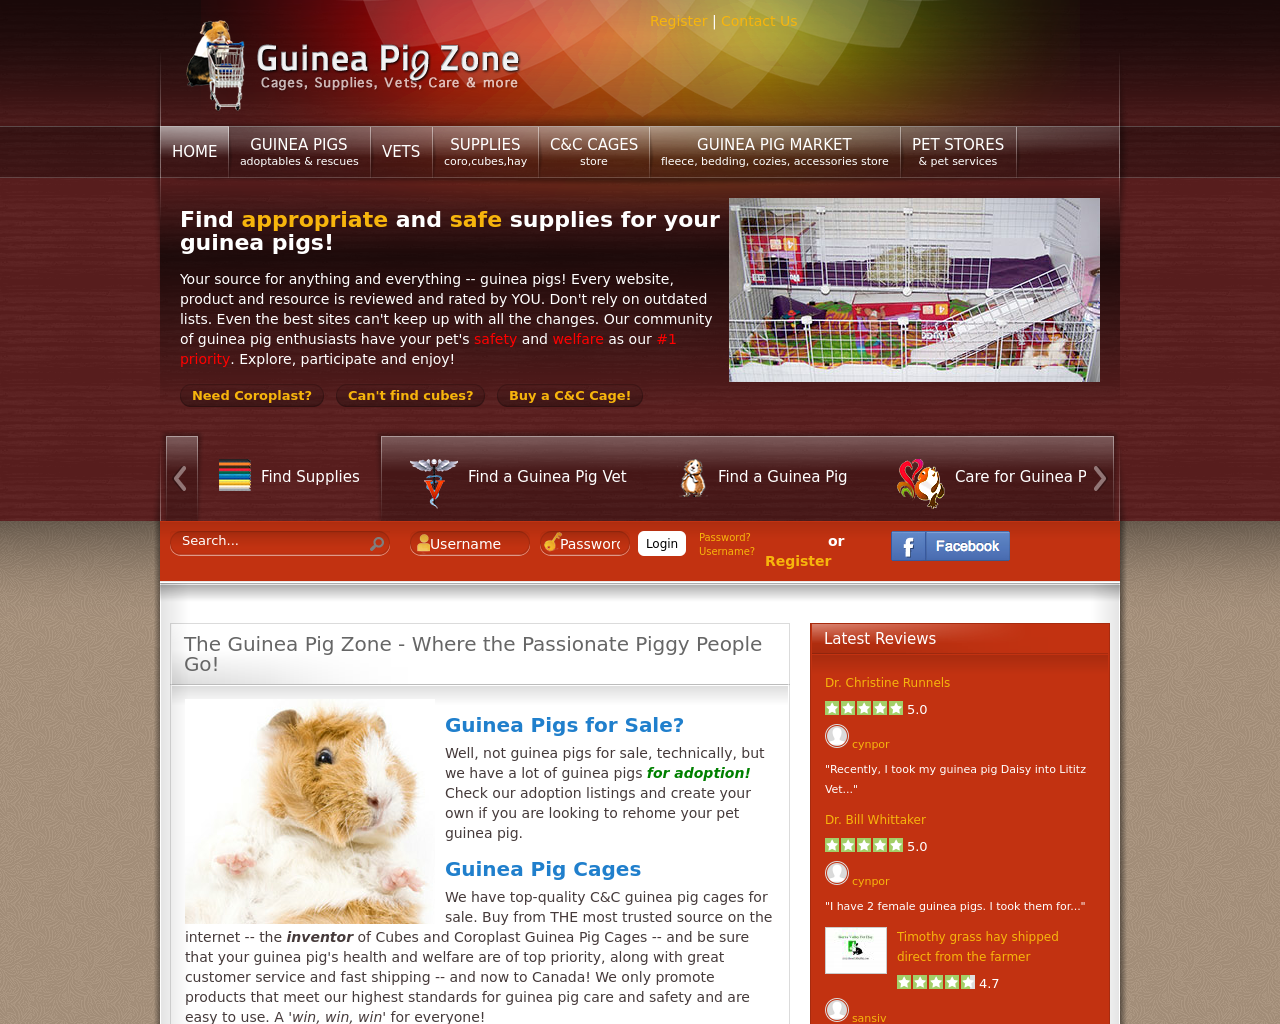 Guinea-Pig-Zone-Advertising-Reviews-Pricing